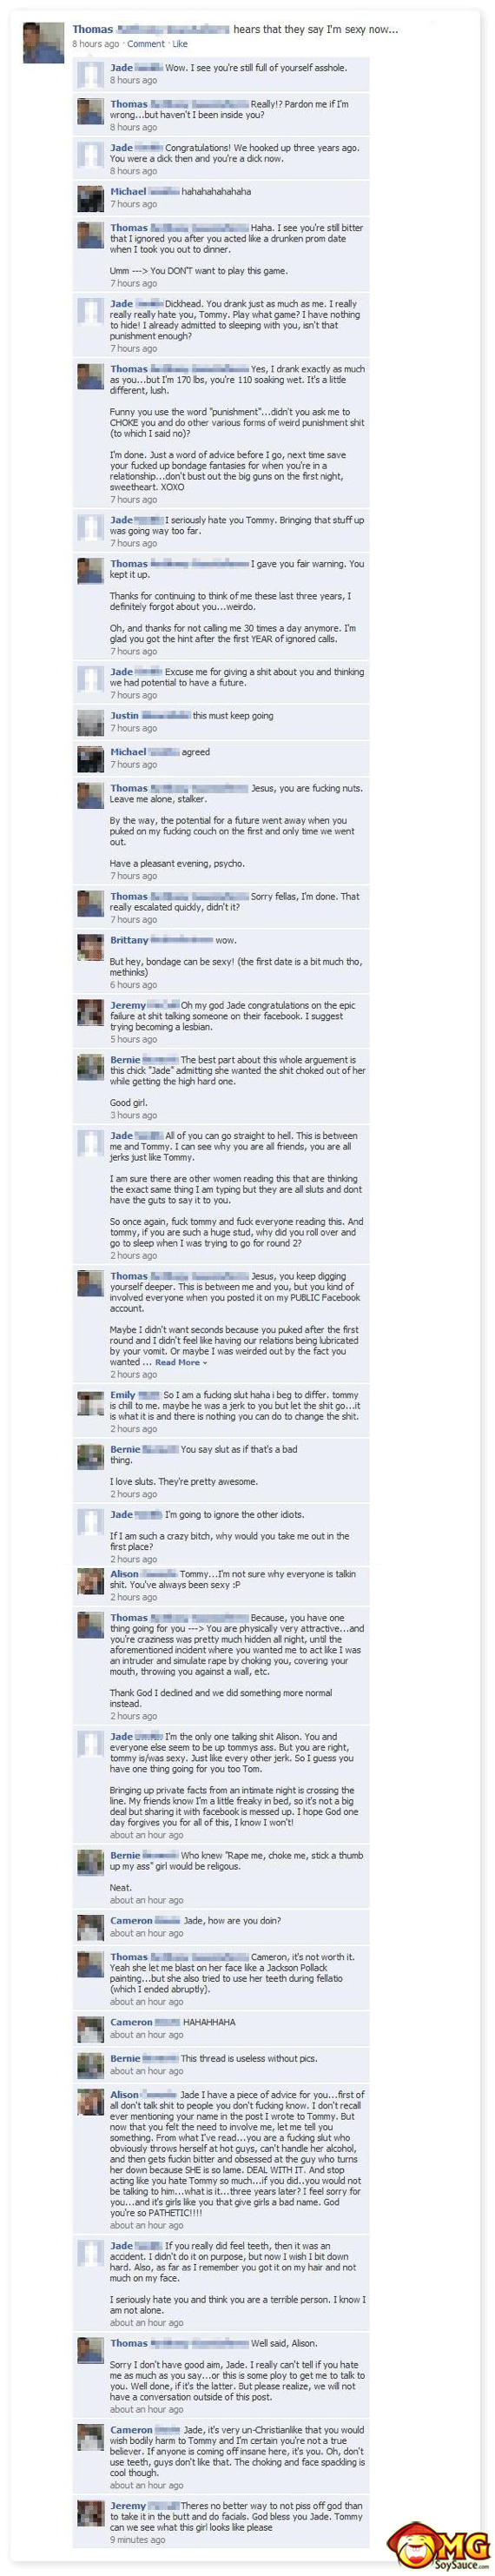 epic-facebook-conversation